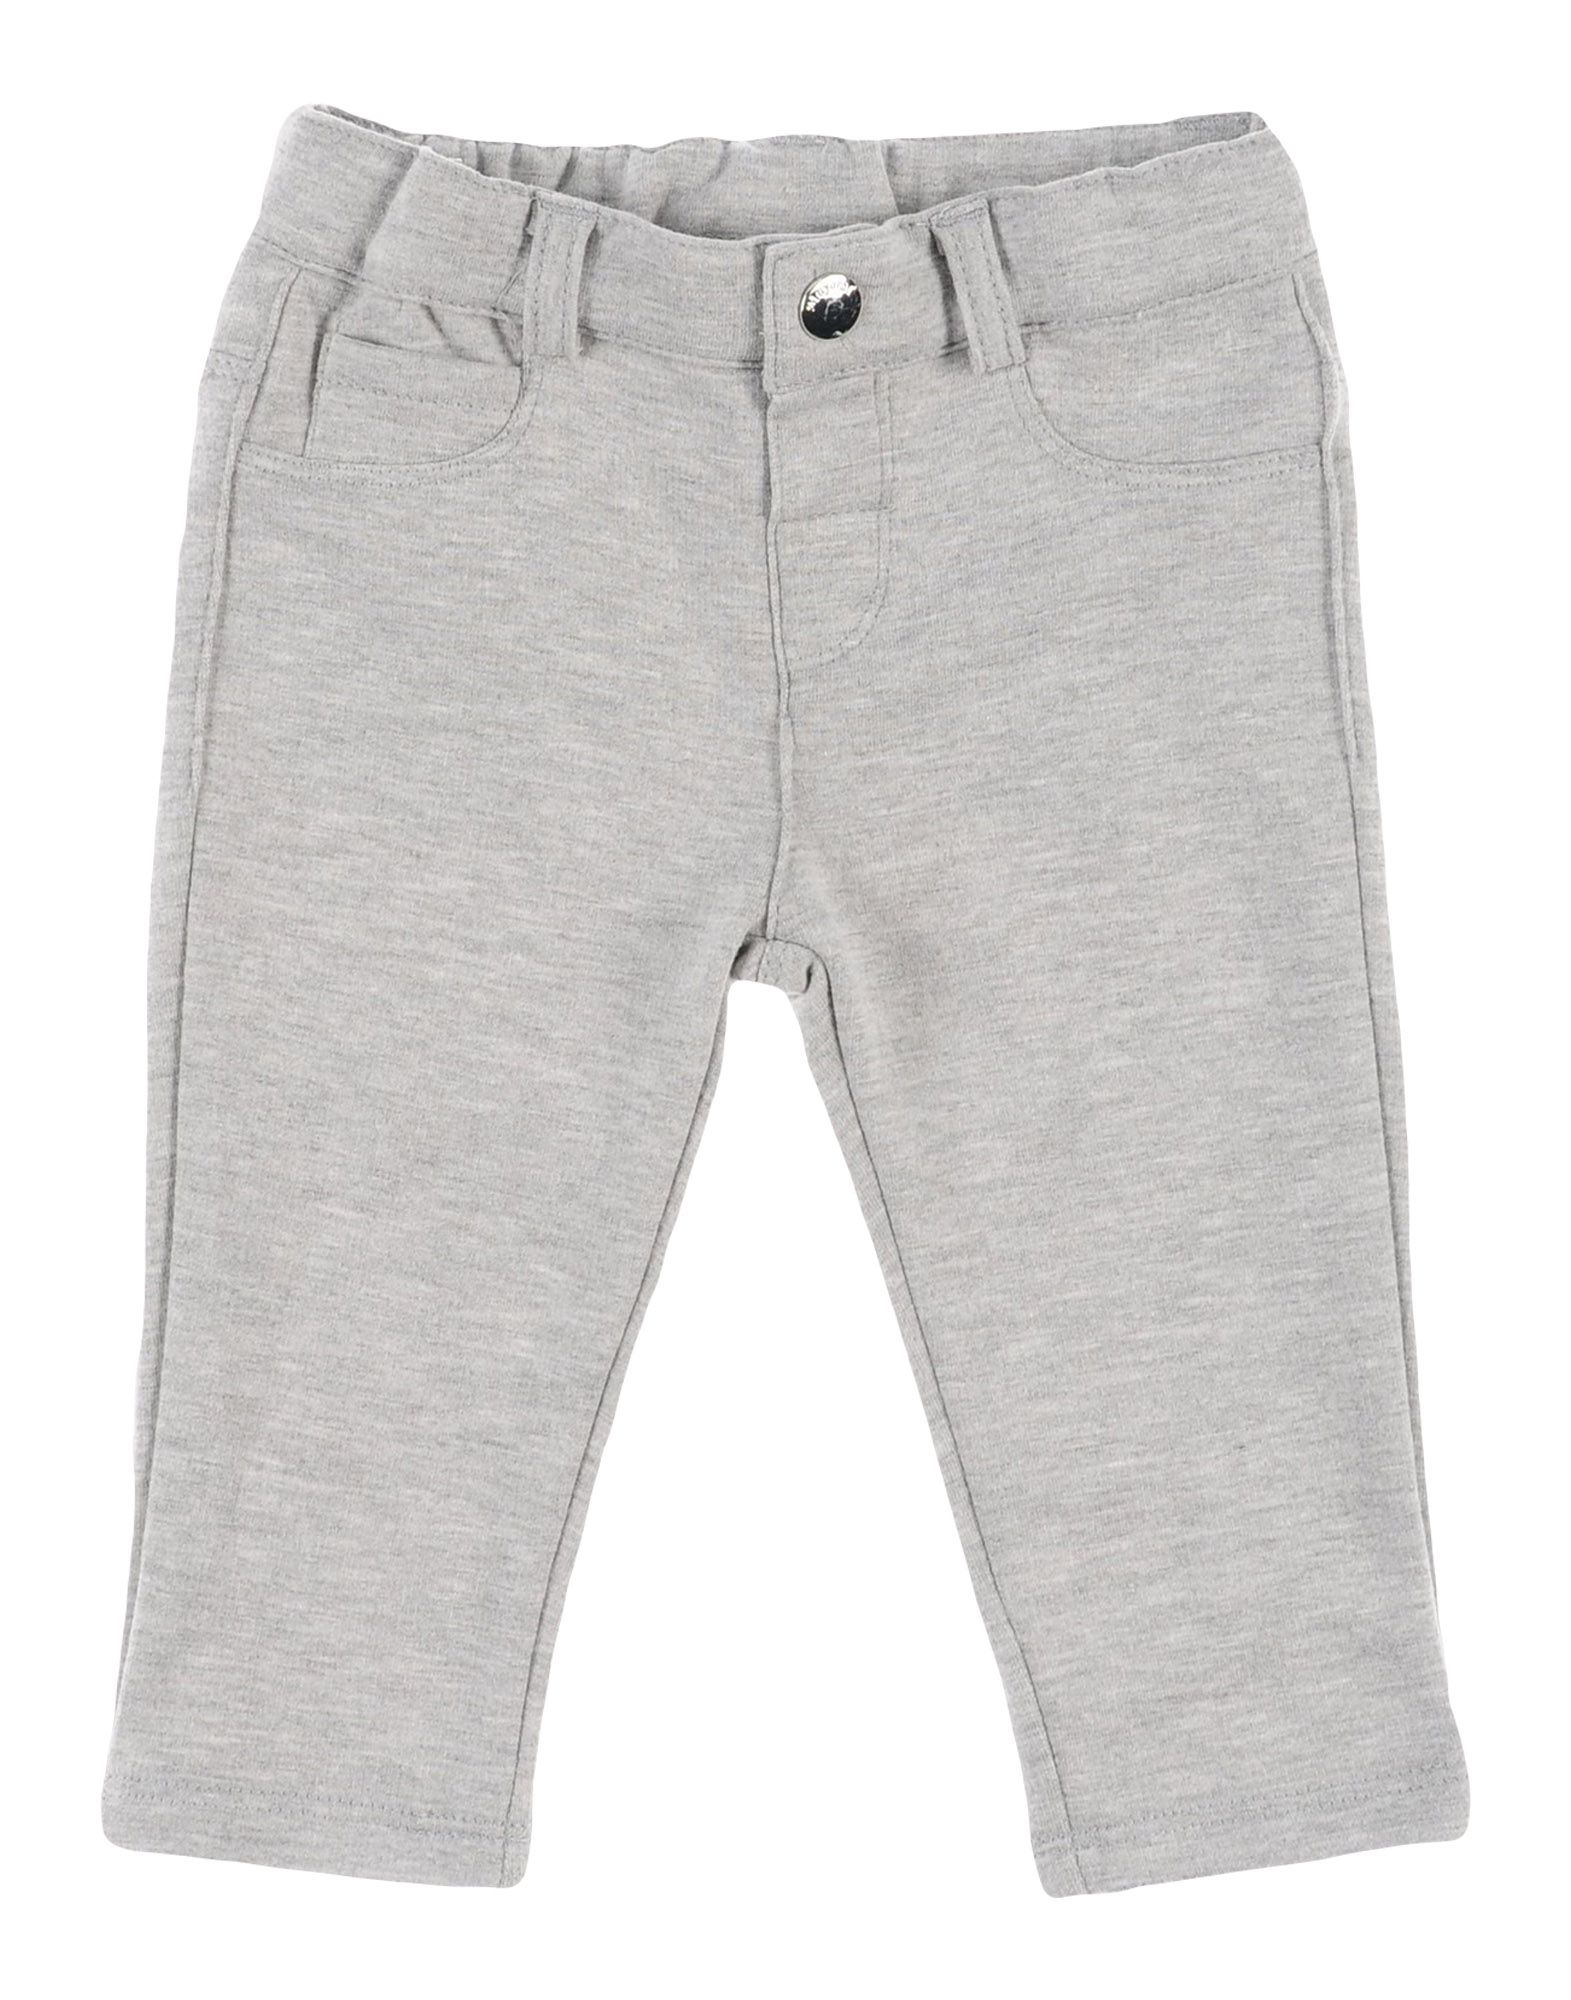 MAYORAL Casual Pants in Light Grey